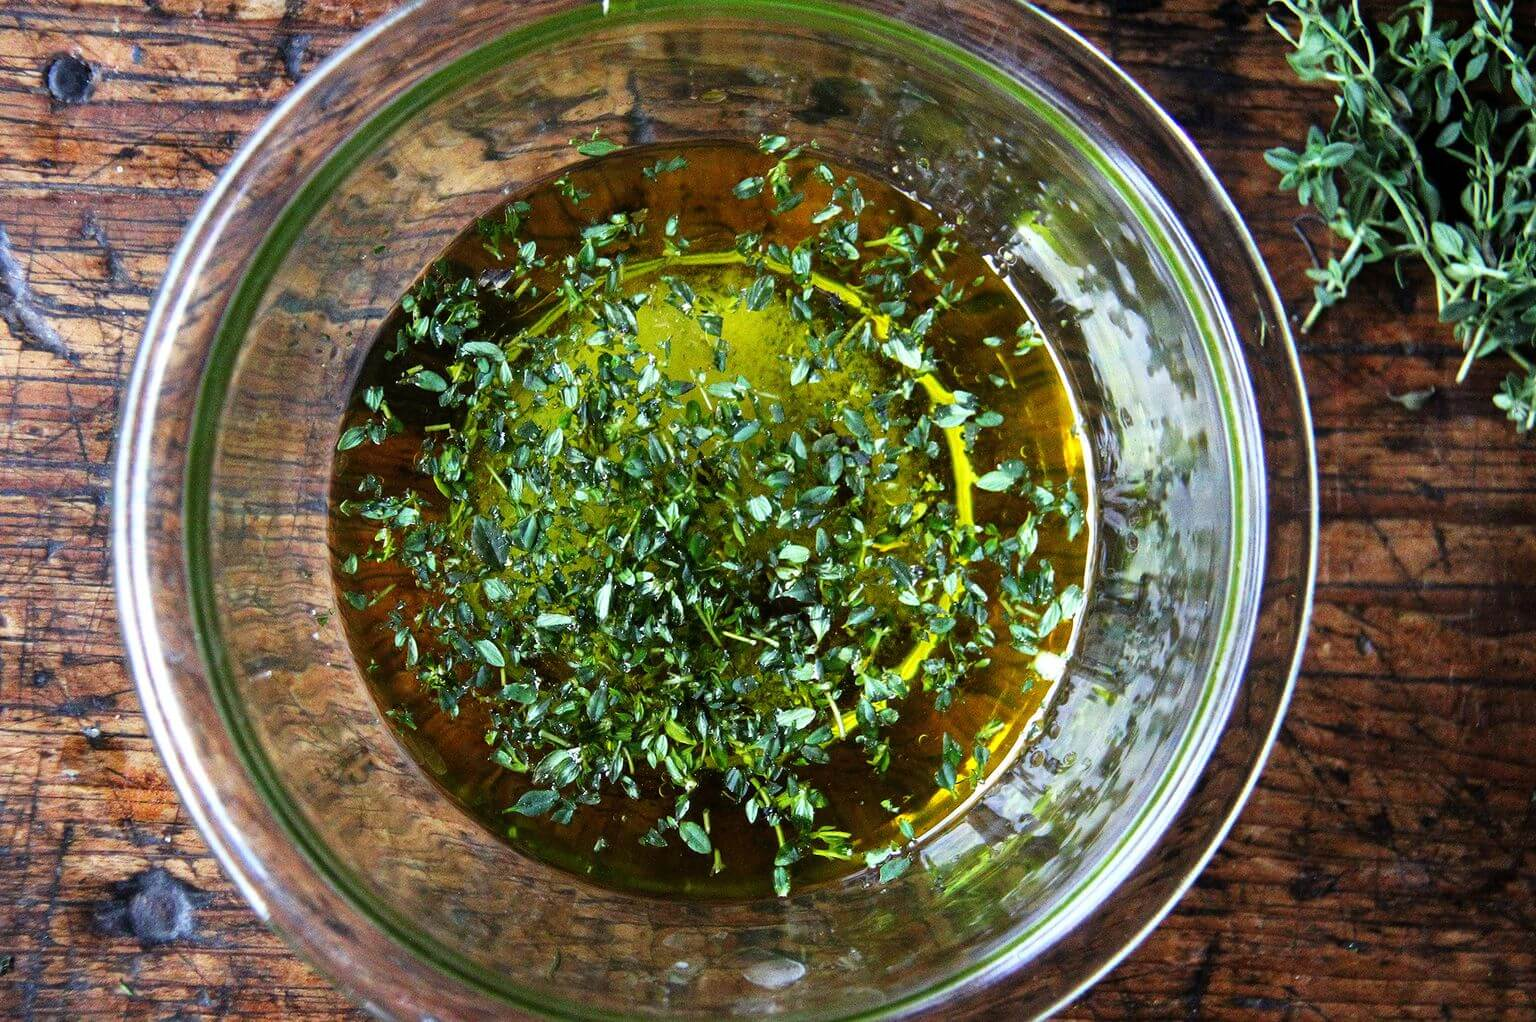 A bowl of olive oil, white balsamic vinegar, and thyme.